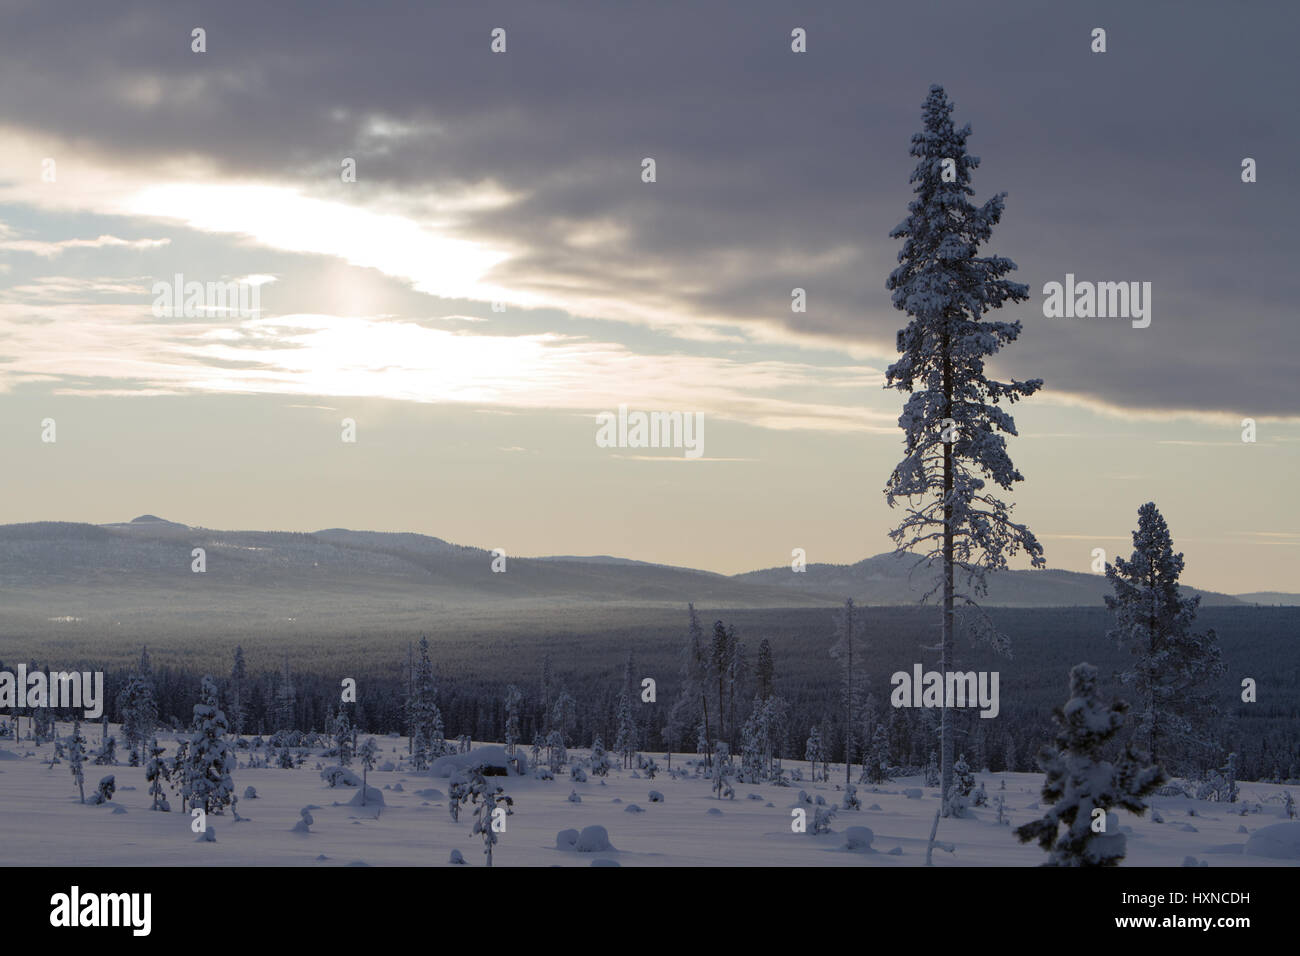 Foggy winter landscape in Laponia, Northern Sweden - Stock Image